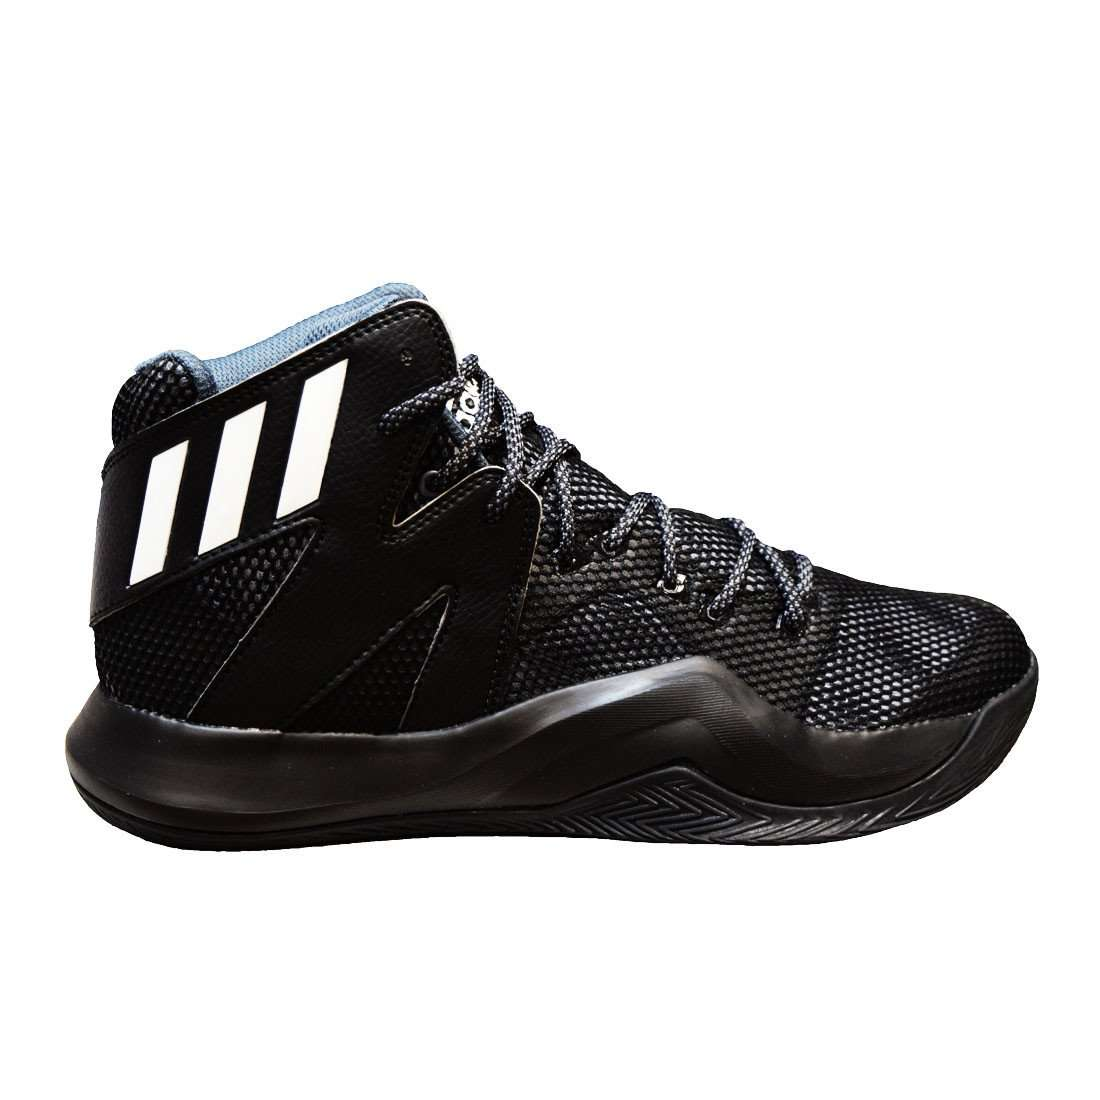 edd06670c ... scarlet core black 5fcf2 30031  sale adidas crazy bounce mens  basketball shoes league outfitters 9073f 99aef